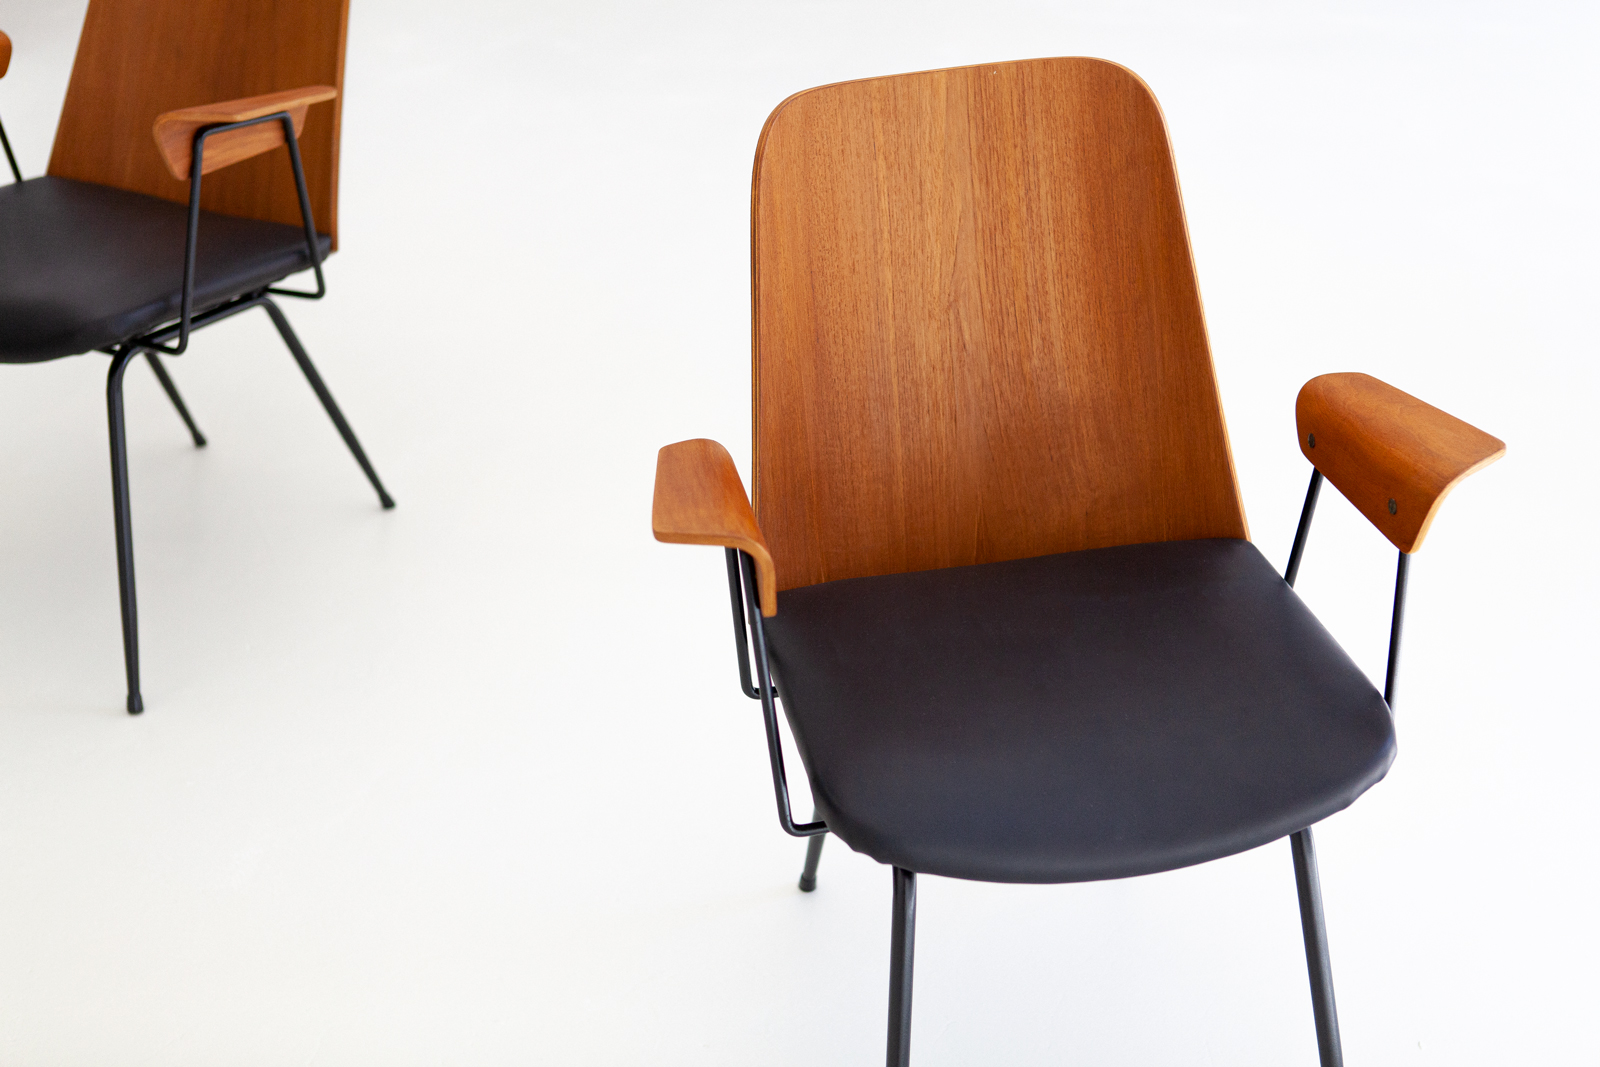 Italian-modern-desk-chairs-by-carlo-ratti-3-se287